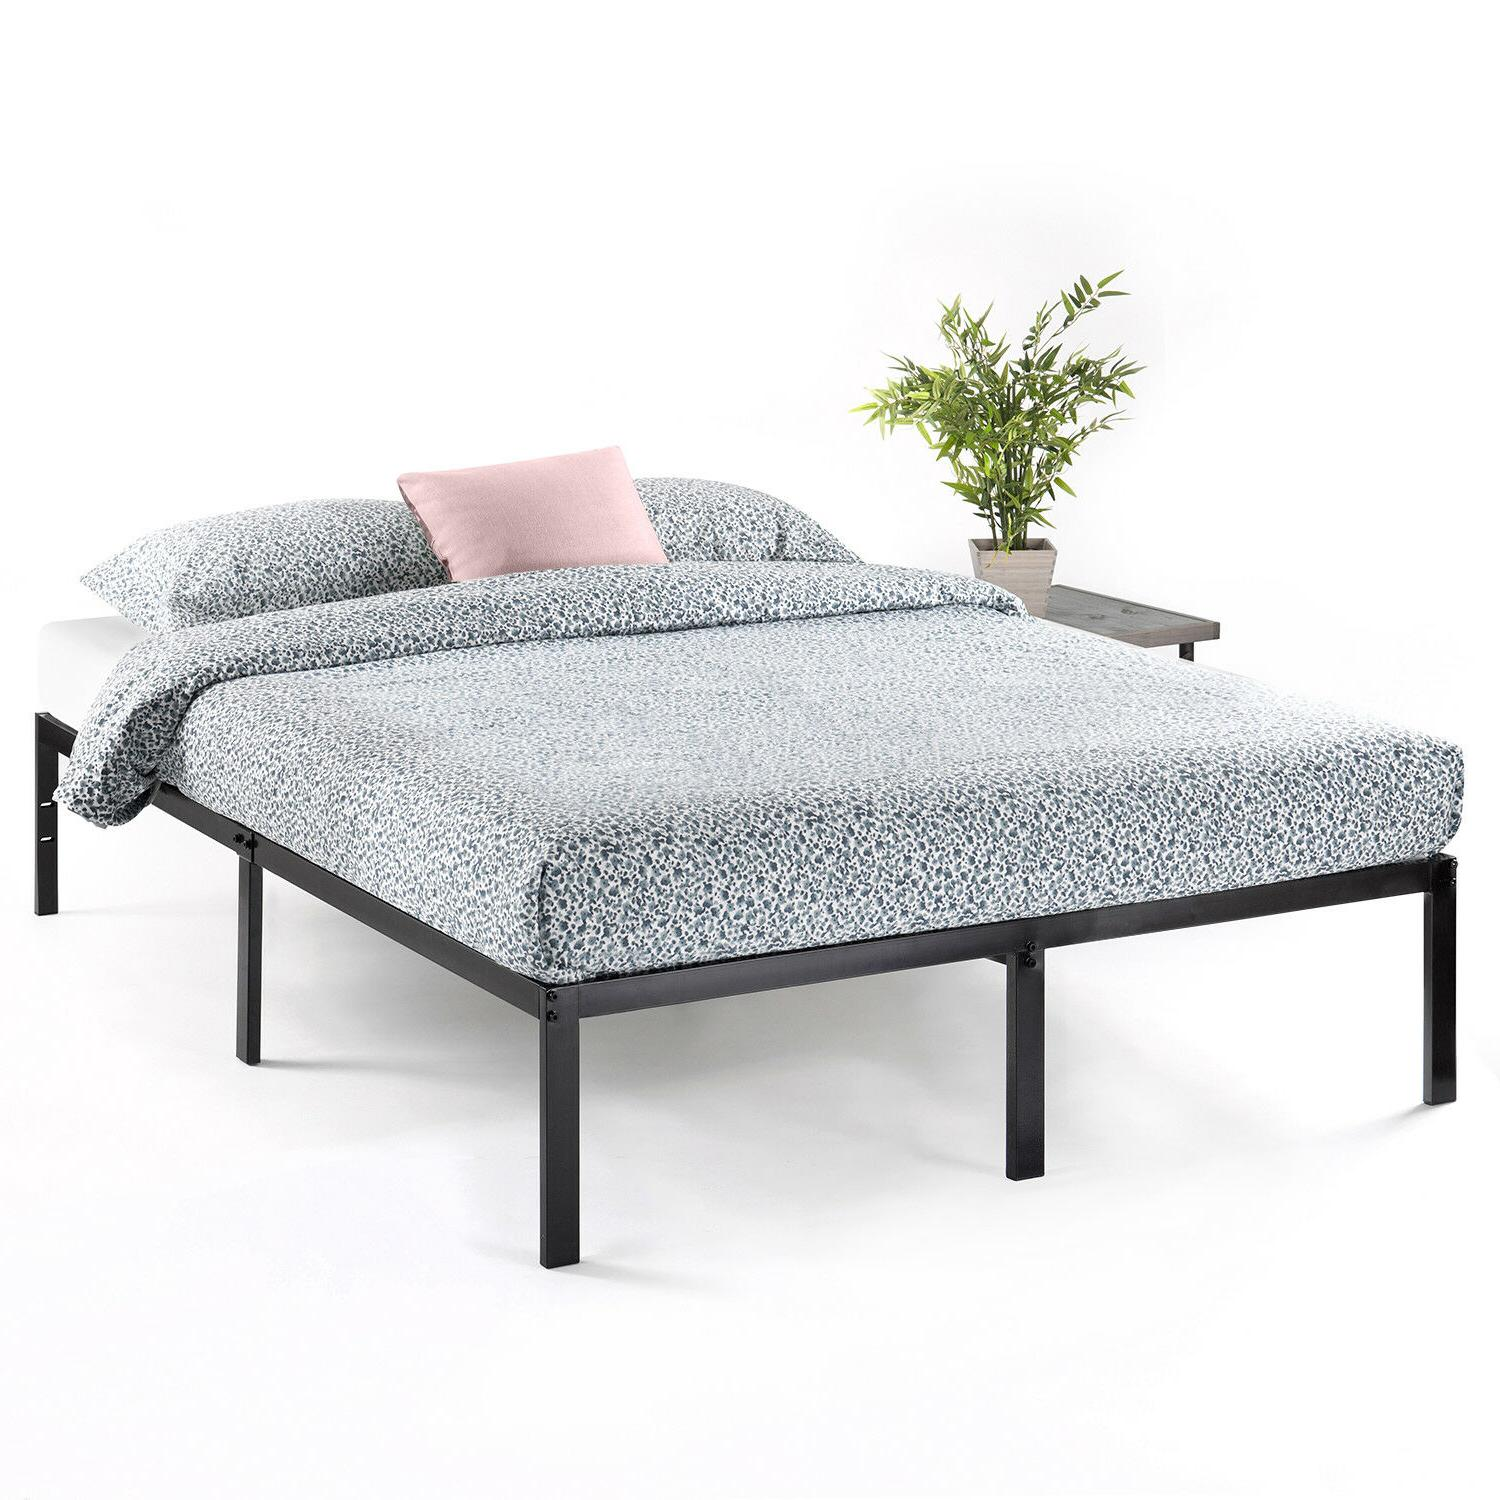 14 classic metal platform bed with heavy